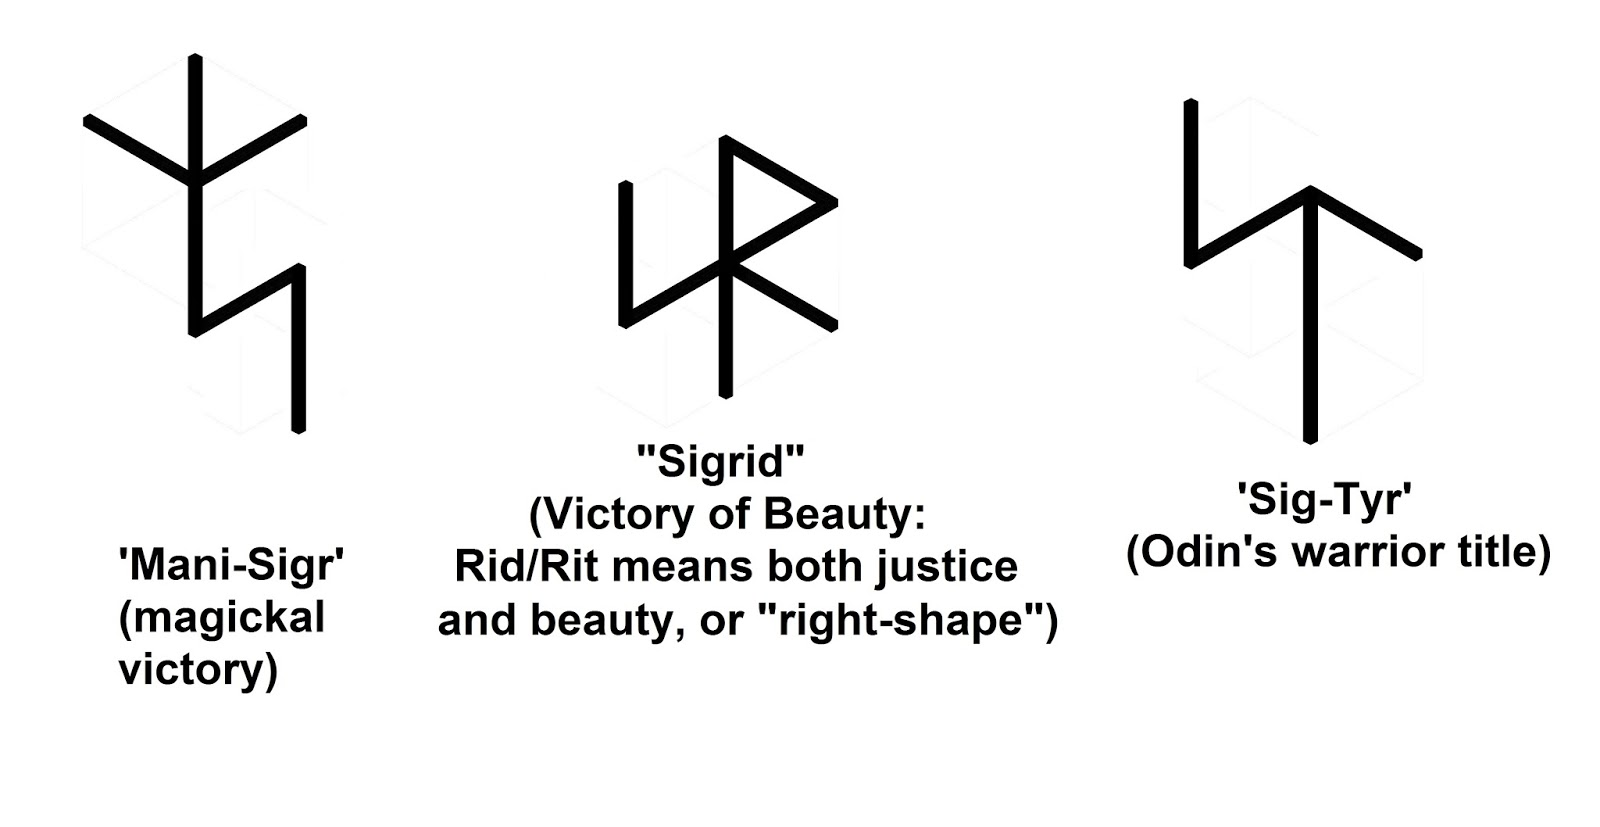 Real rune magick the esoteric praxis of bind runes armanen bind runes using sig the center symbol sigrid is a female name with valkyrie connotations in addition to being a rune spell for the augmentation buycottarizona Choice Image